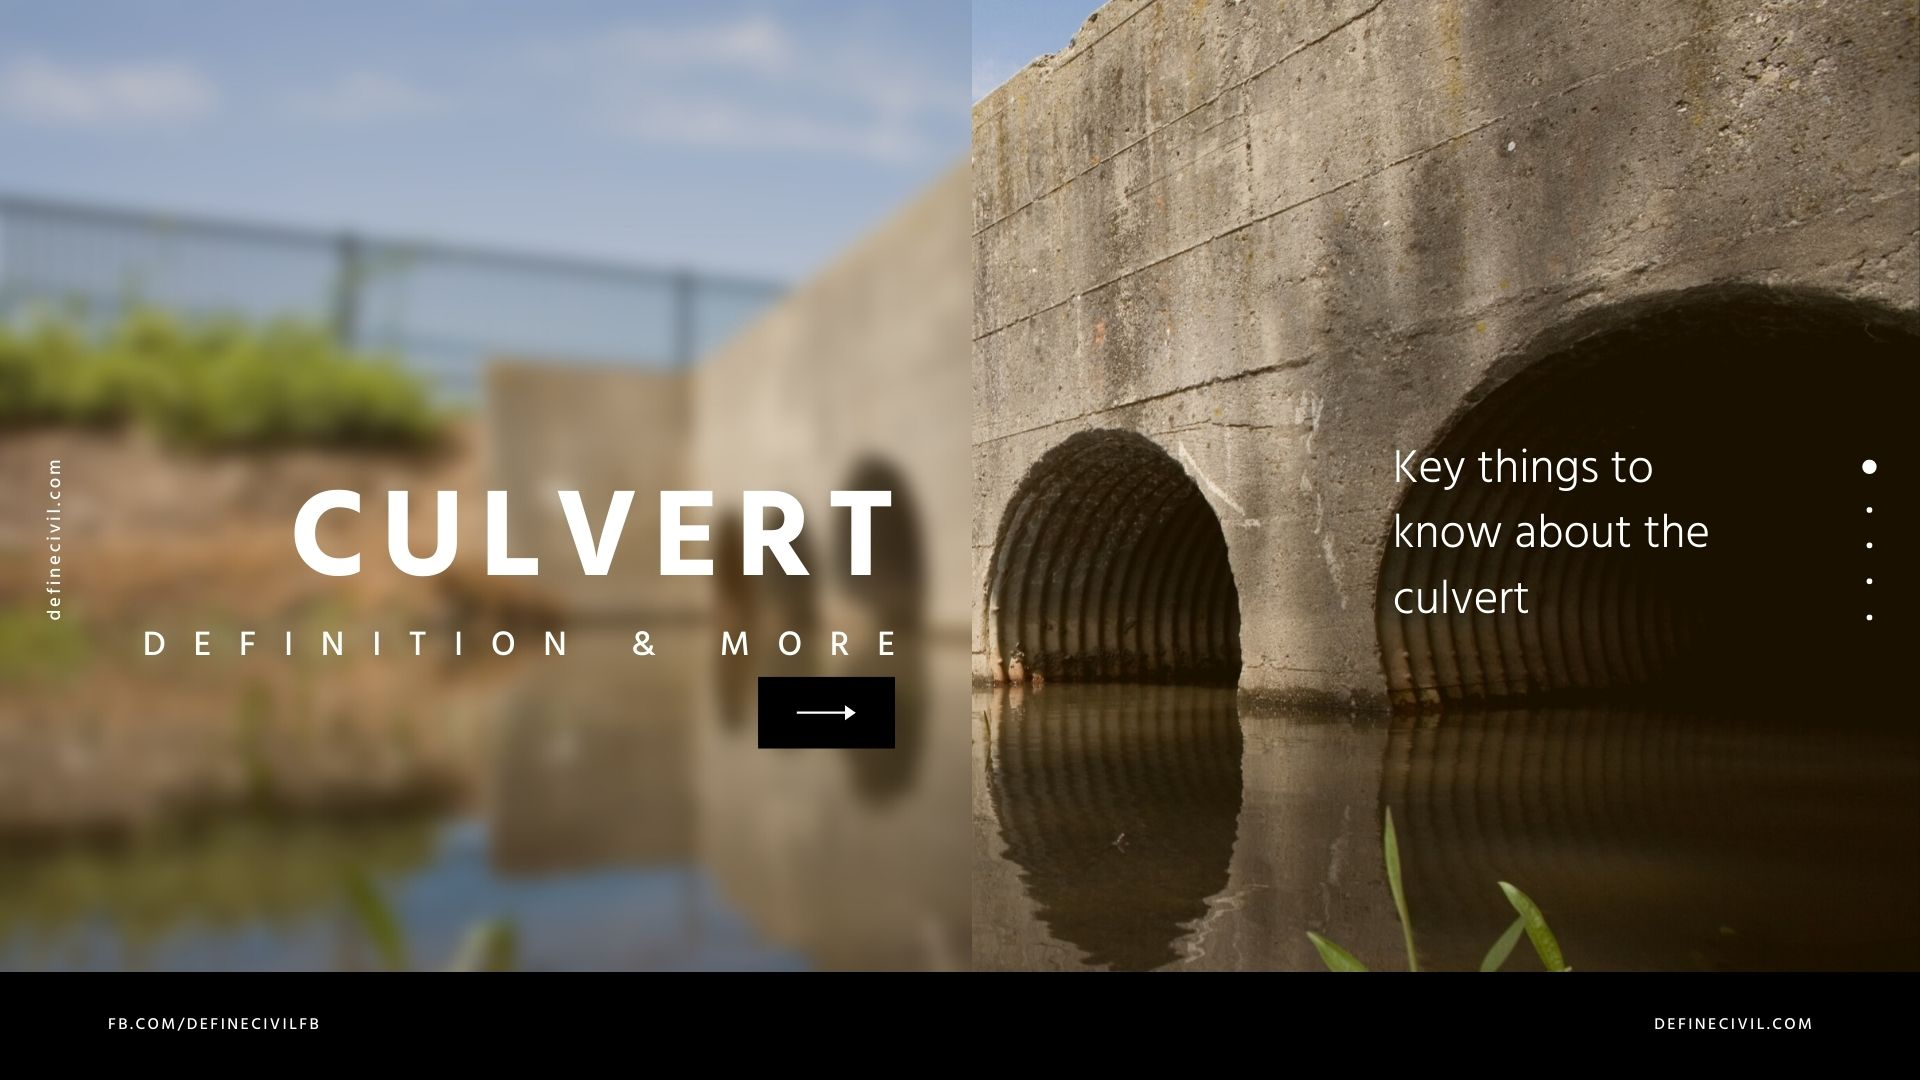 What is a culvert